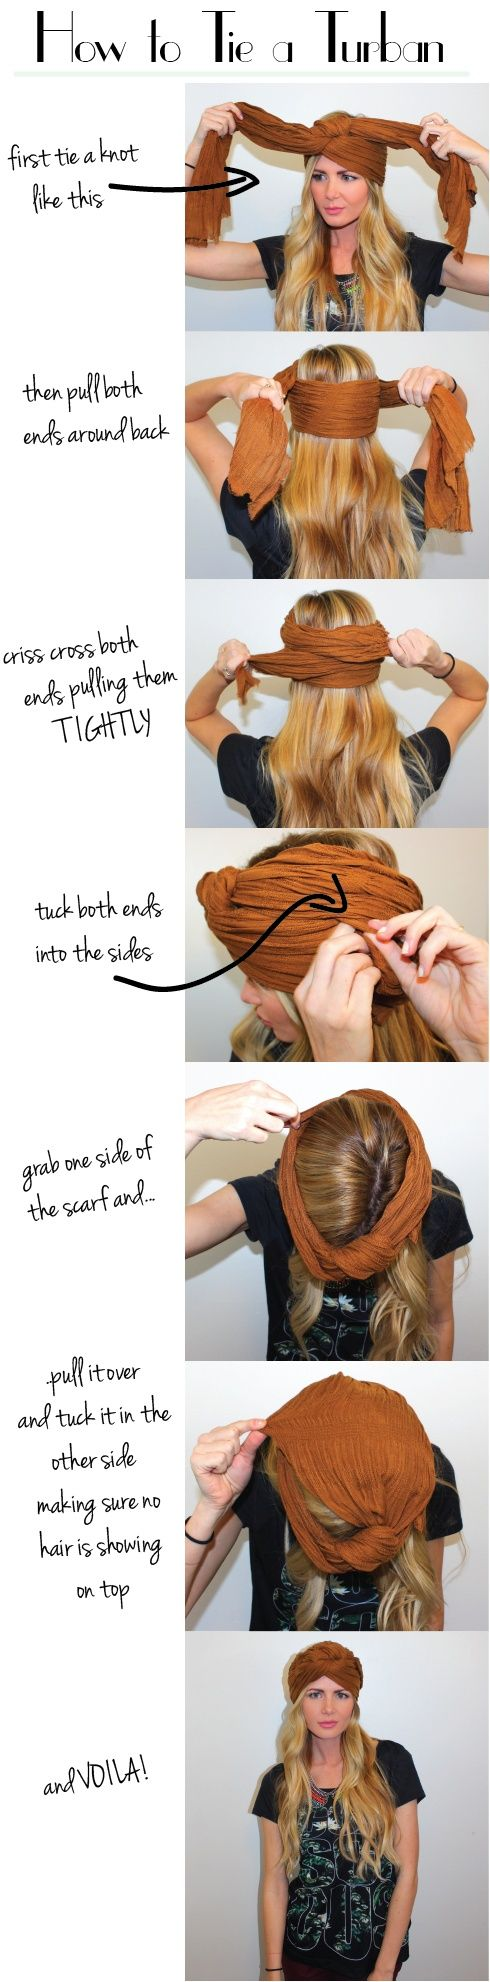 wonder if colored muslin fabric would work for this. How to Tie a Turban with a Scarf.  might be my new hairdo while I have a newborn!